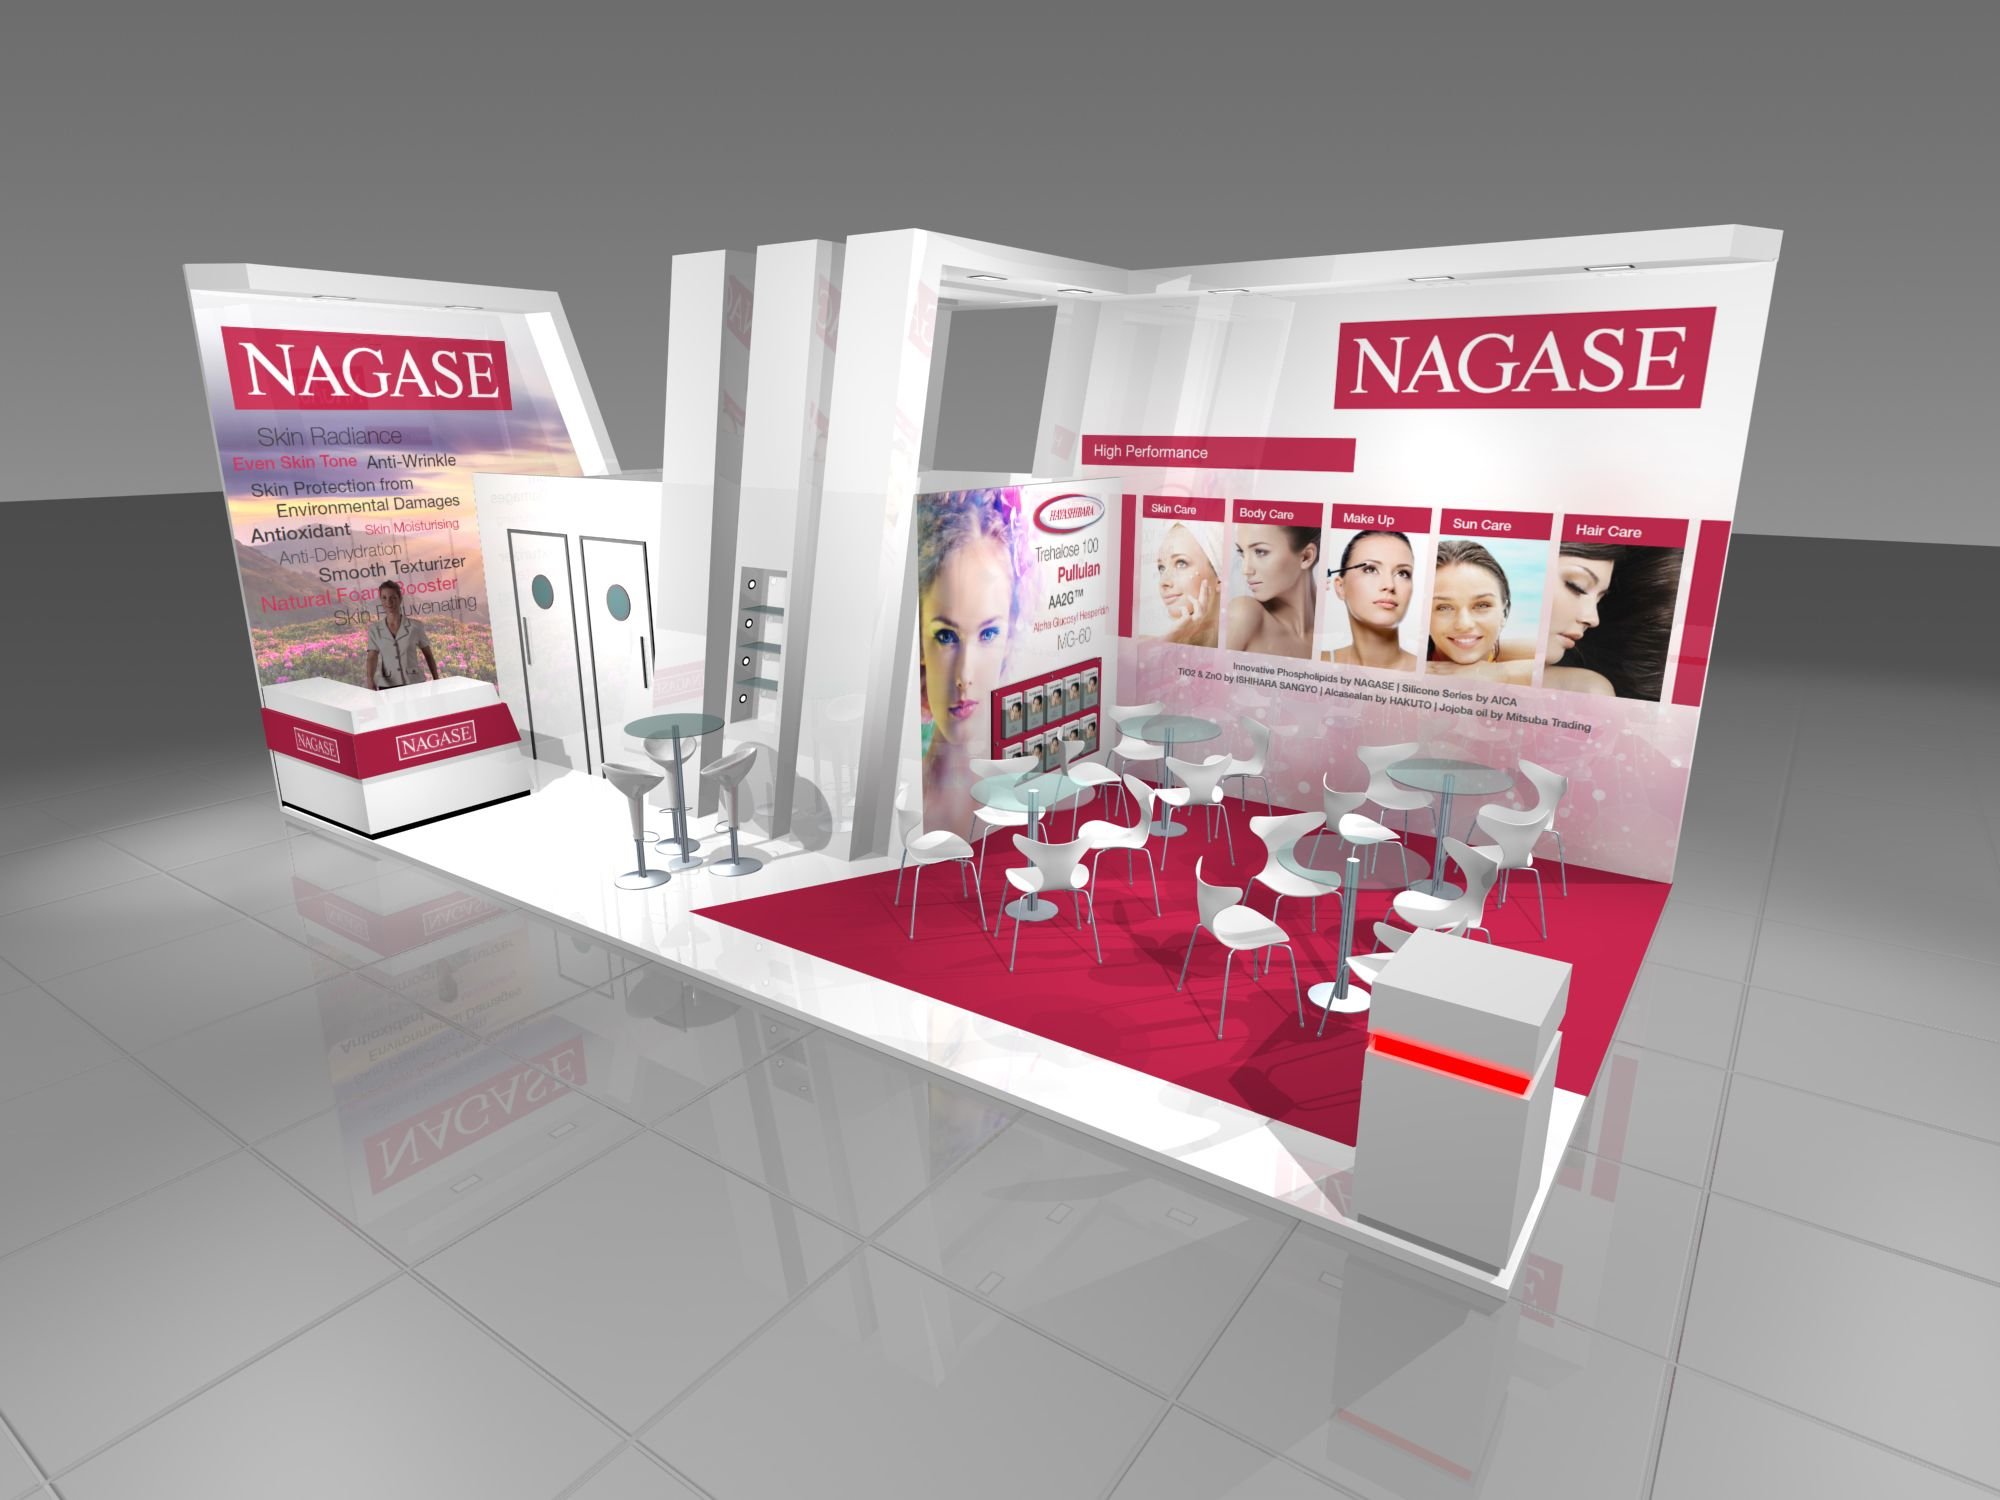 Cosmetic Exhibition Stand Design : Nagase exhibition stand design render for in cosmetics